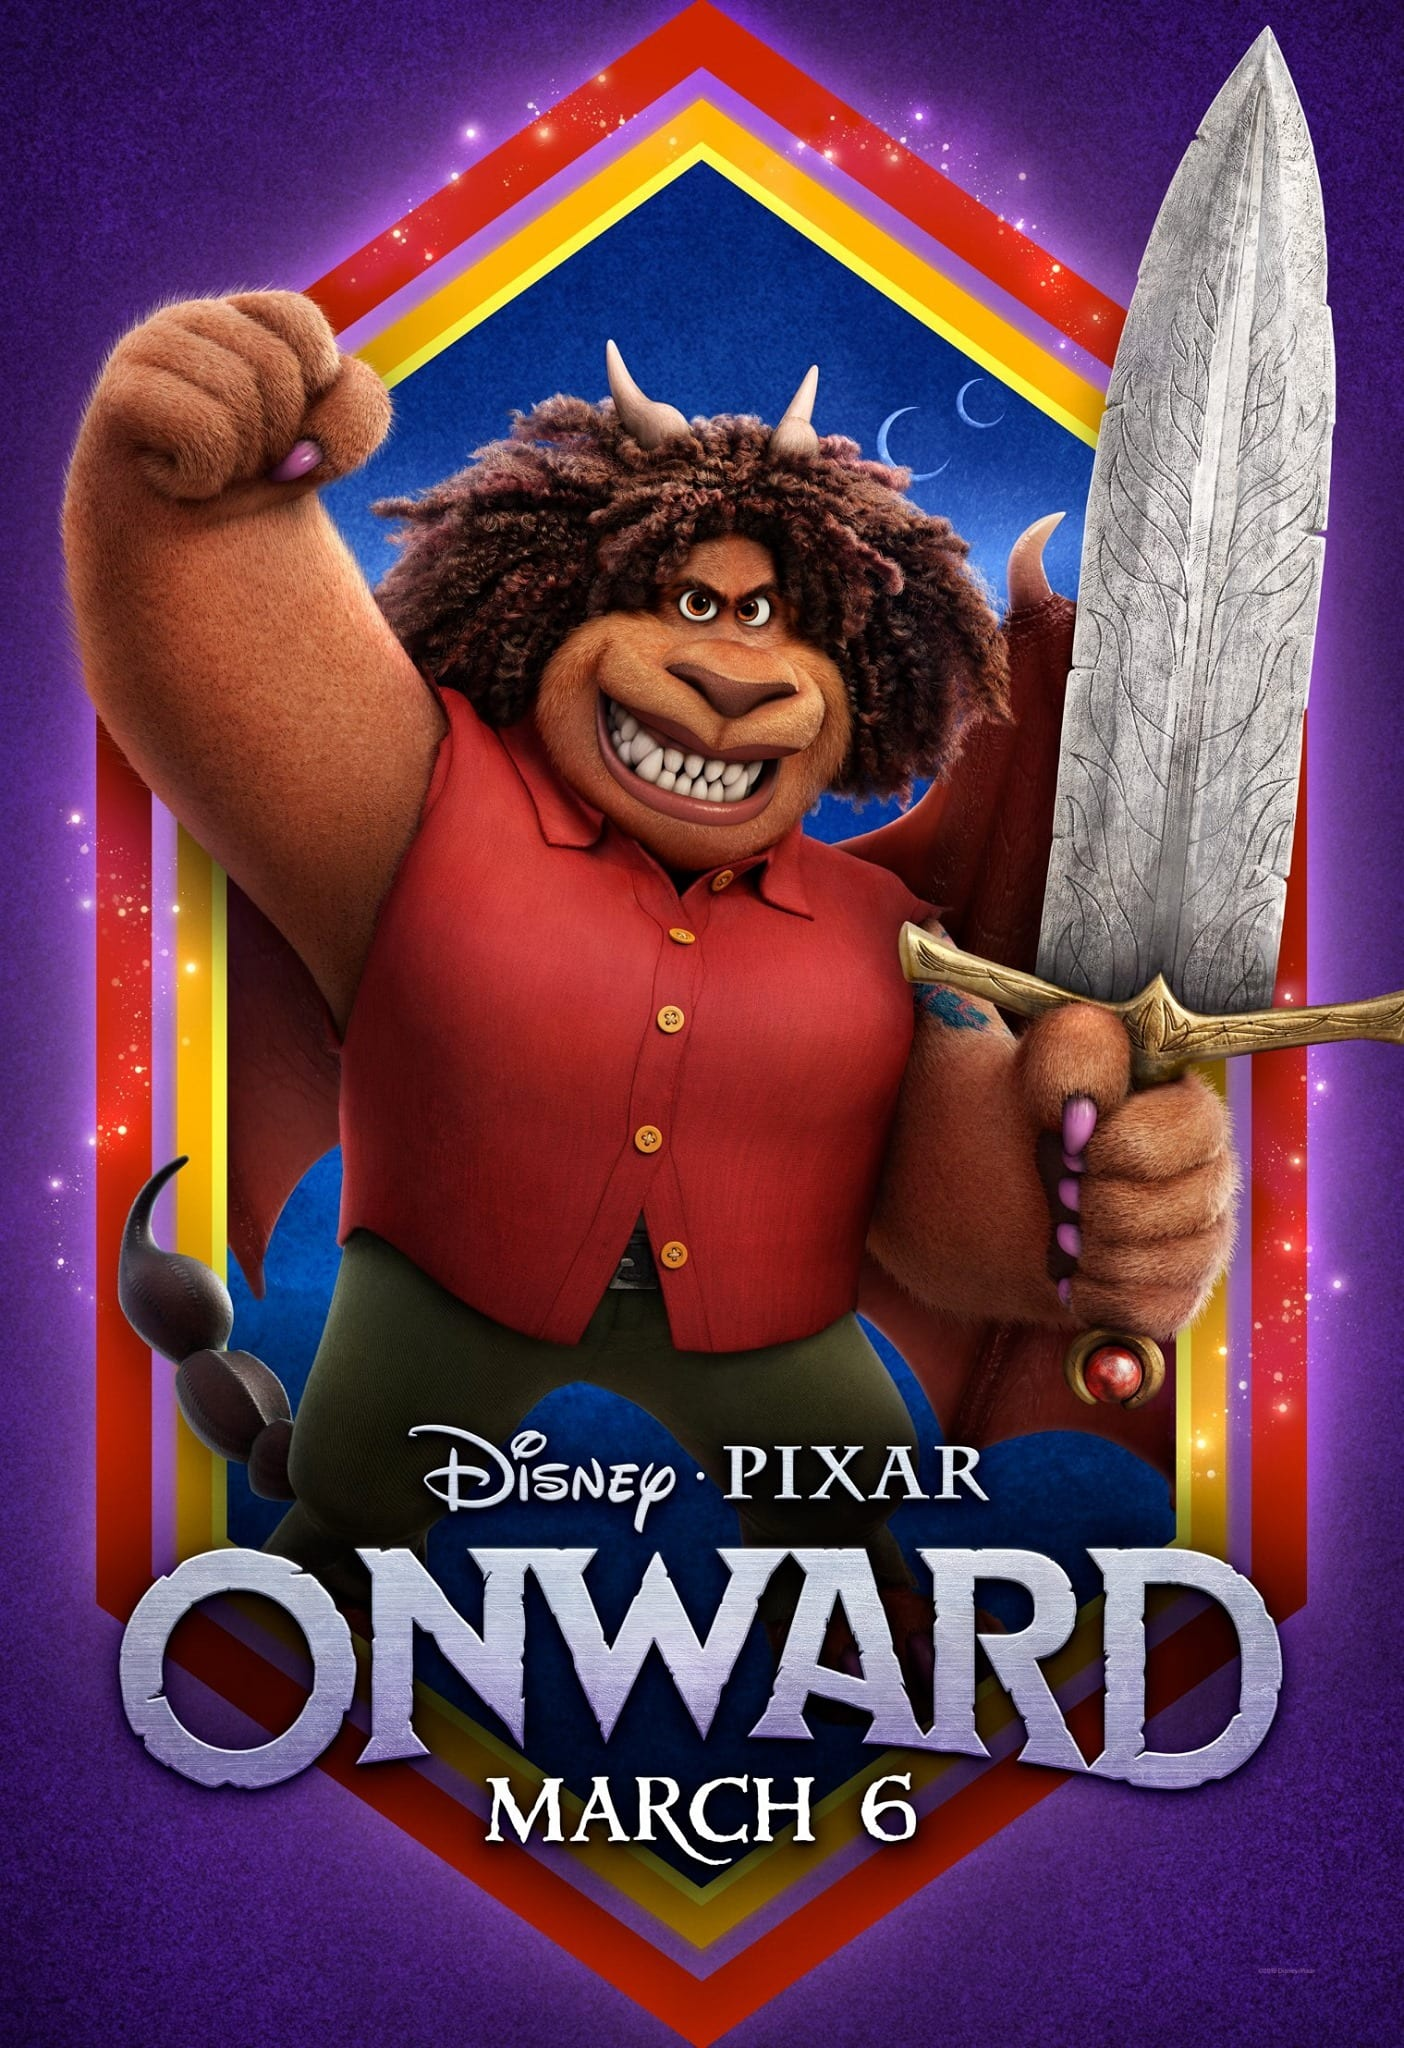 Pixar Onward Character Posters Octavia Spencer is Corey The Manticore